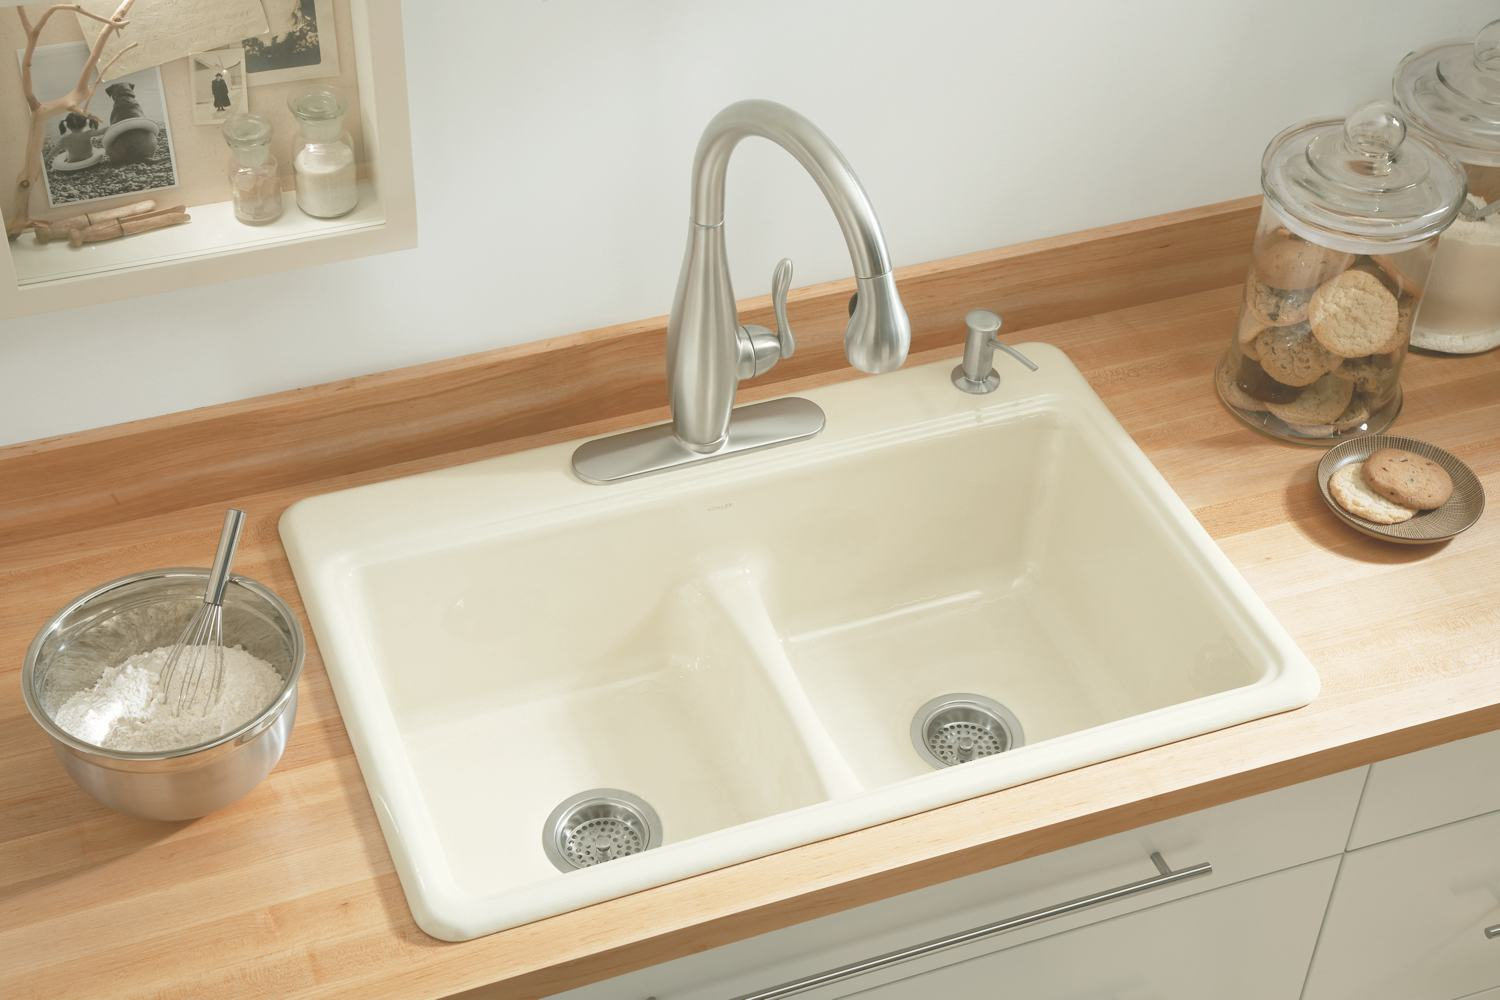 kohler-kitchen-sink-with-interesting-appearance-for-interesting-kitchen-design-and-decorating-ideas-5